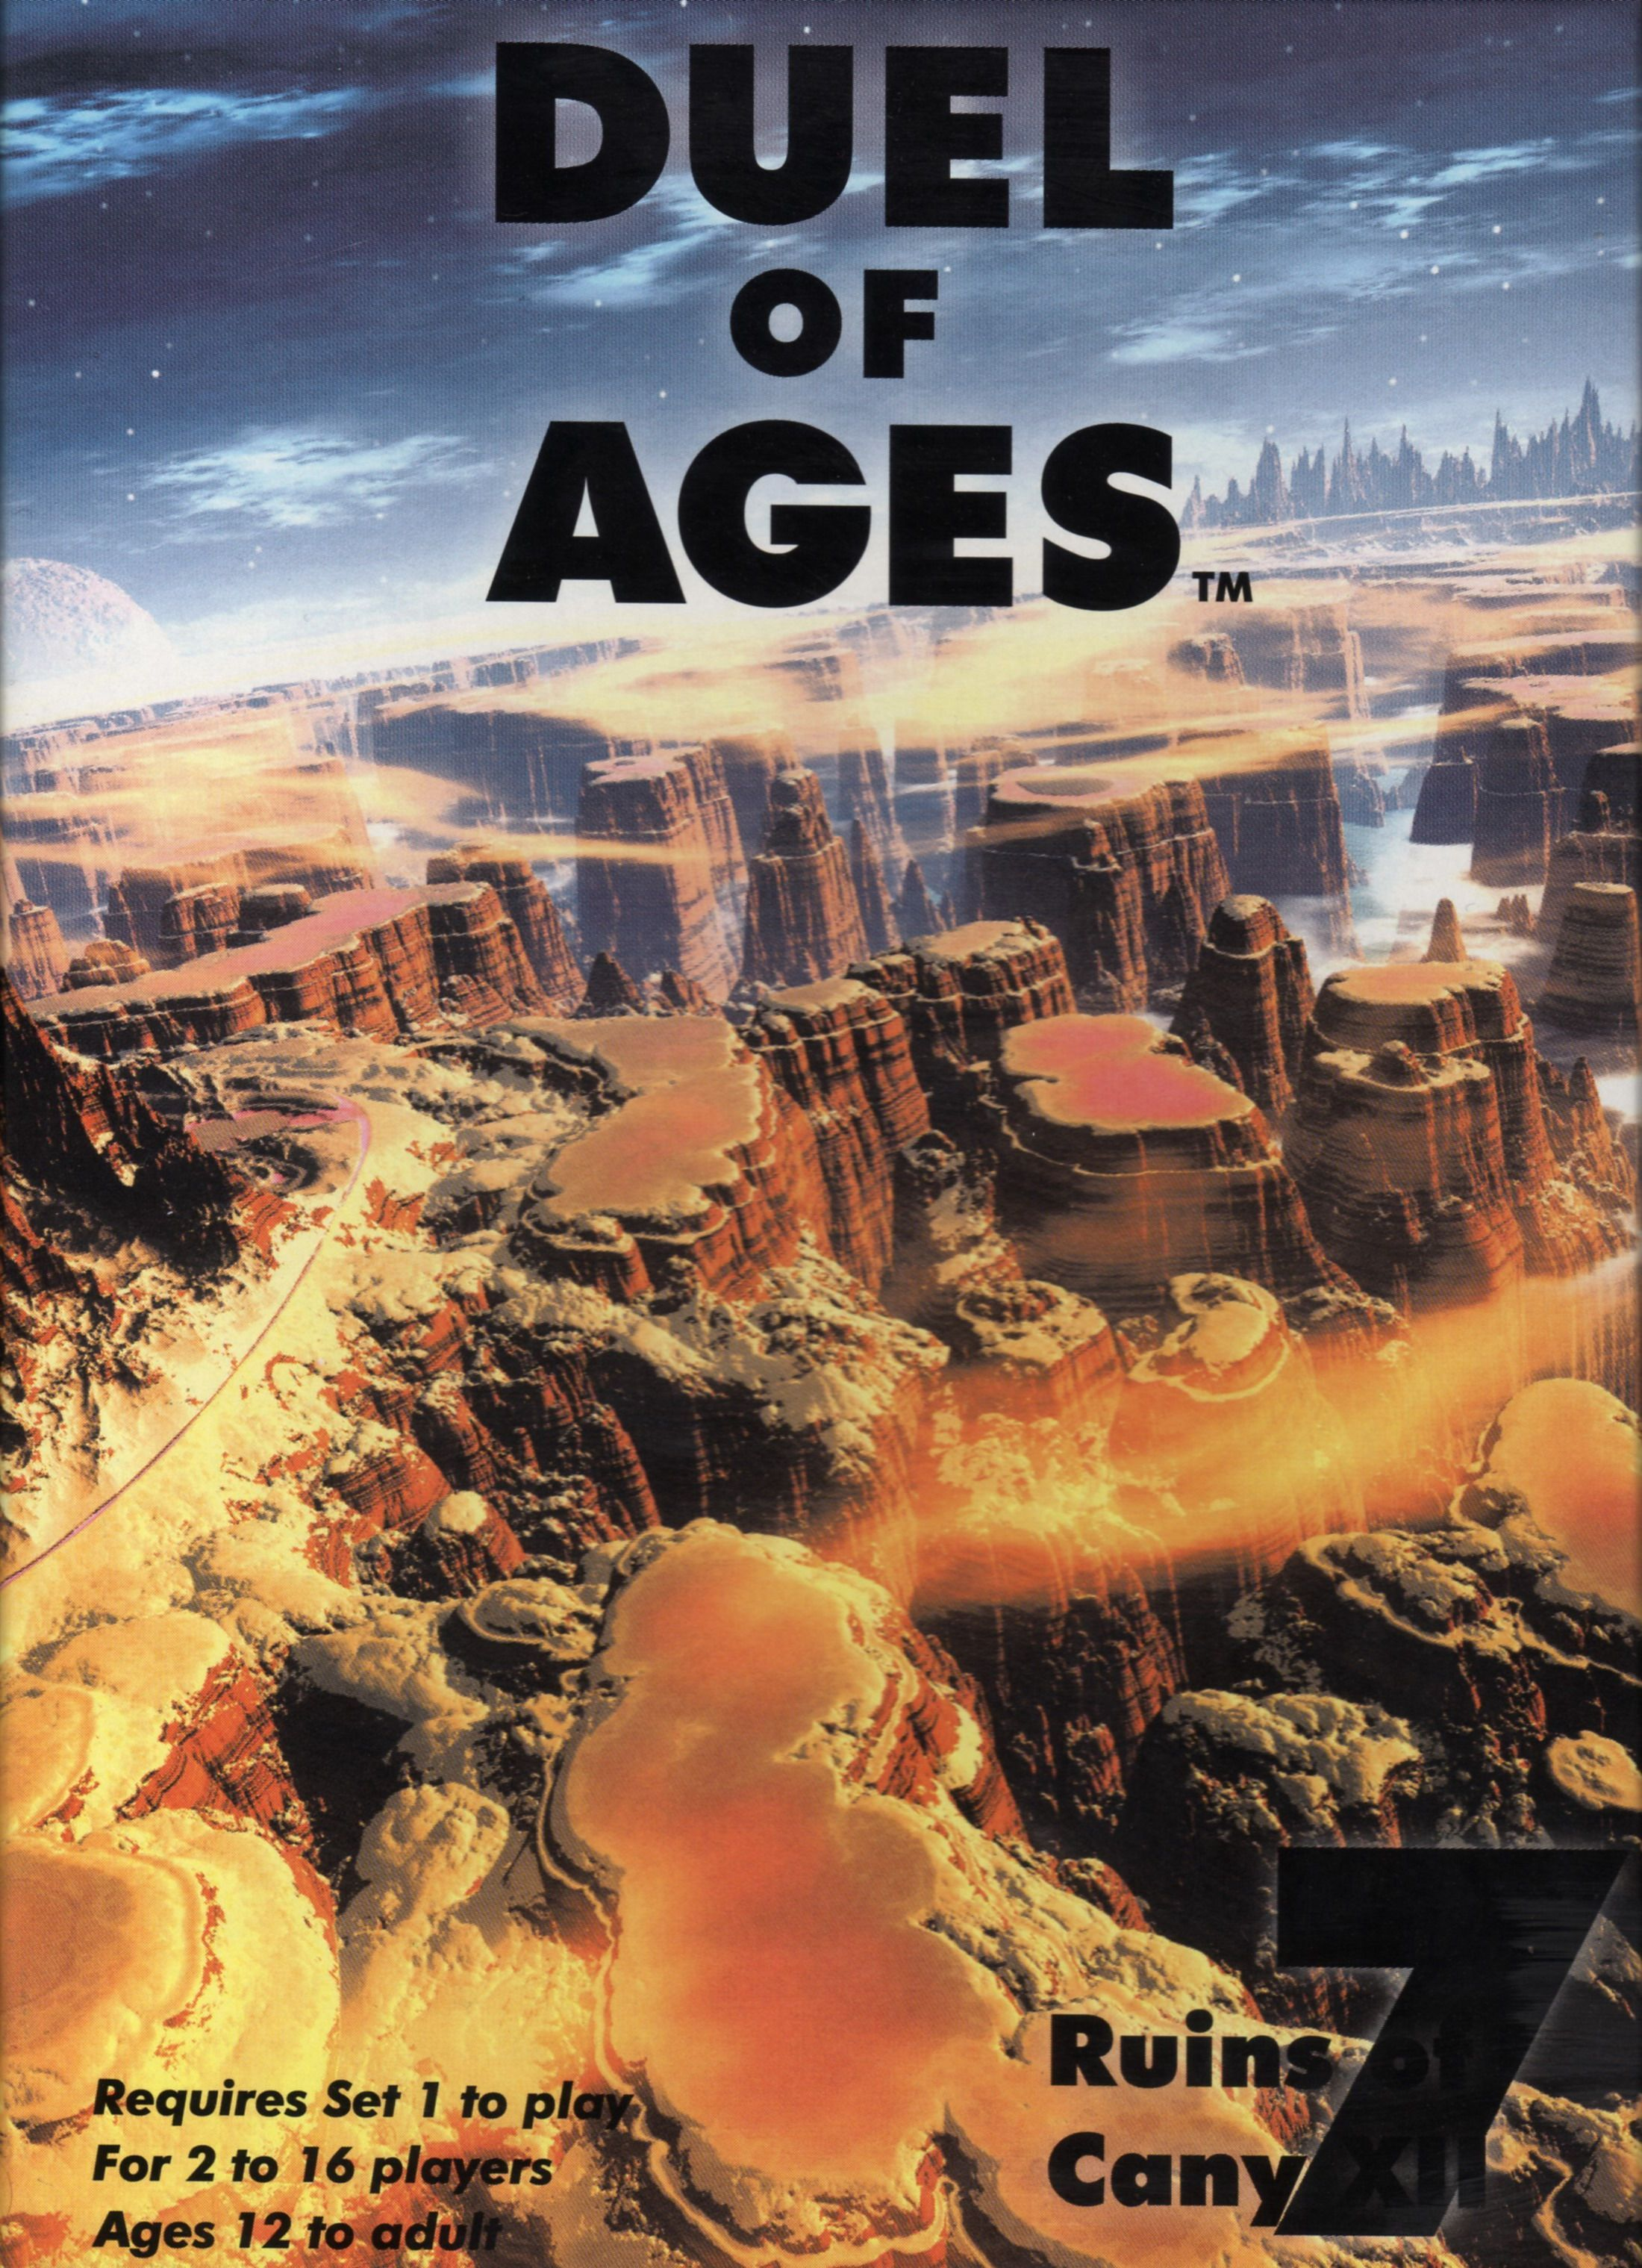 Duel of Ages Set 7: Ruins of Cany XII